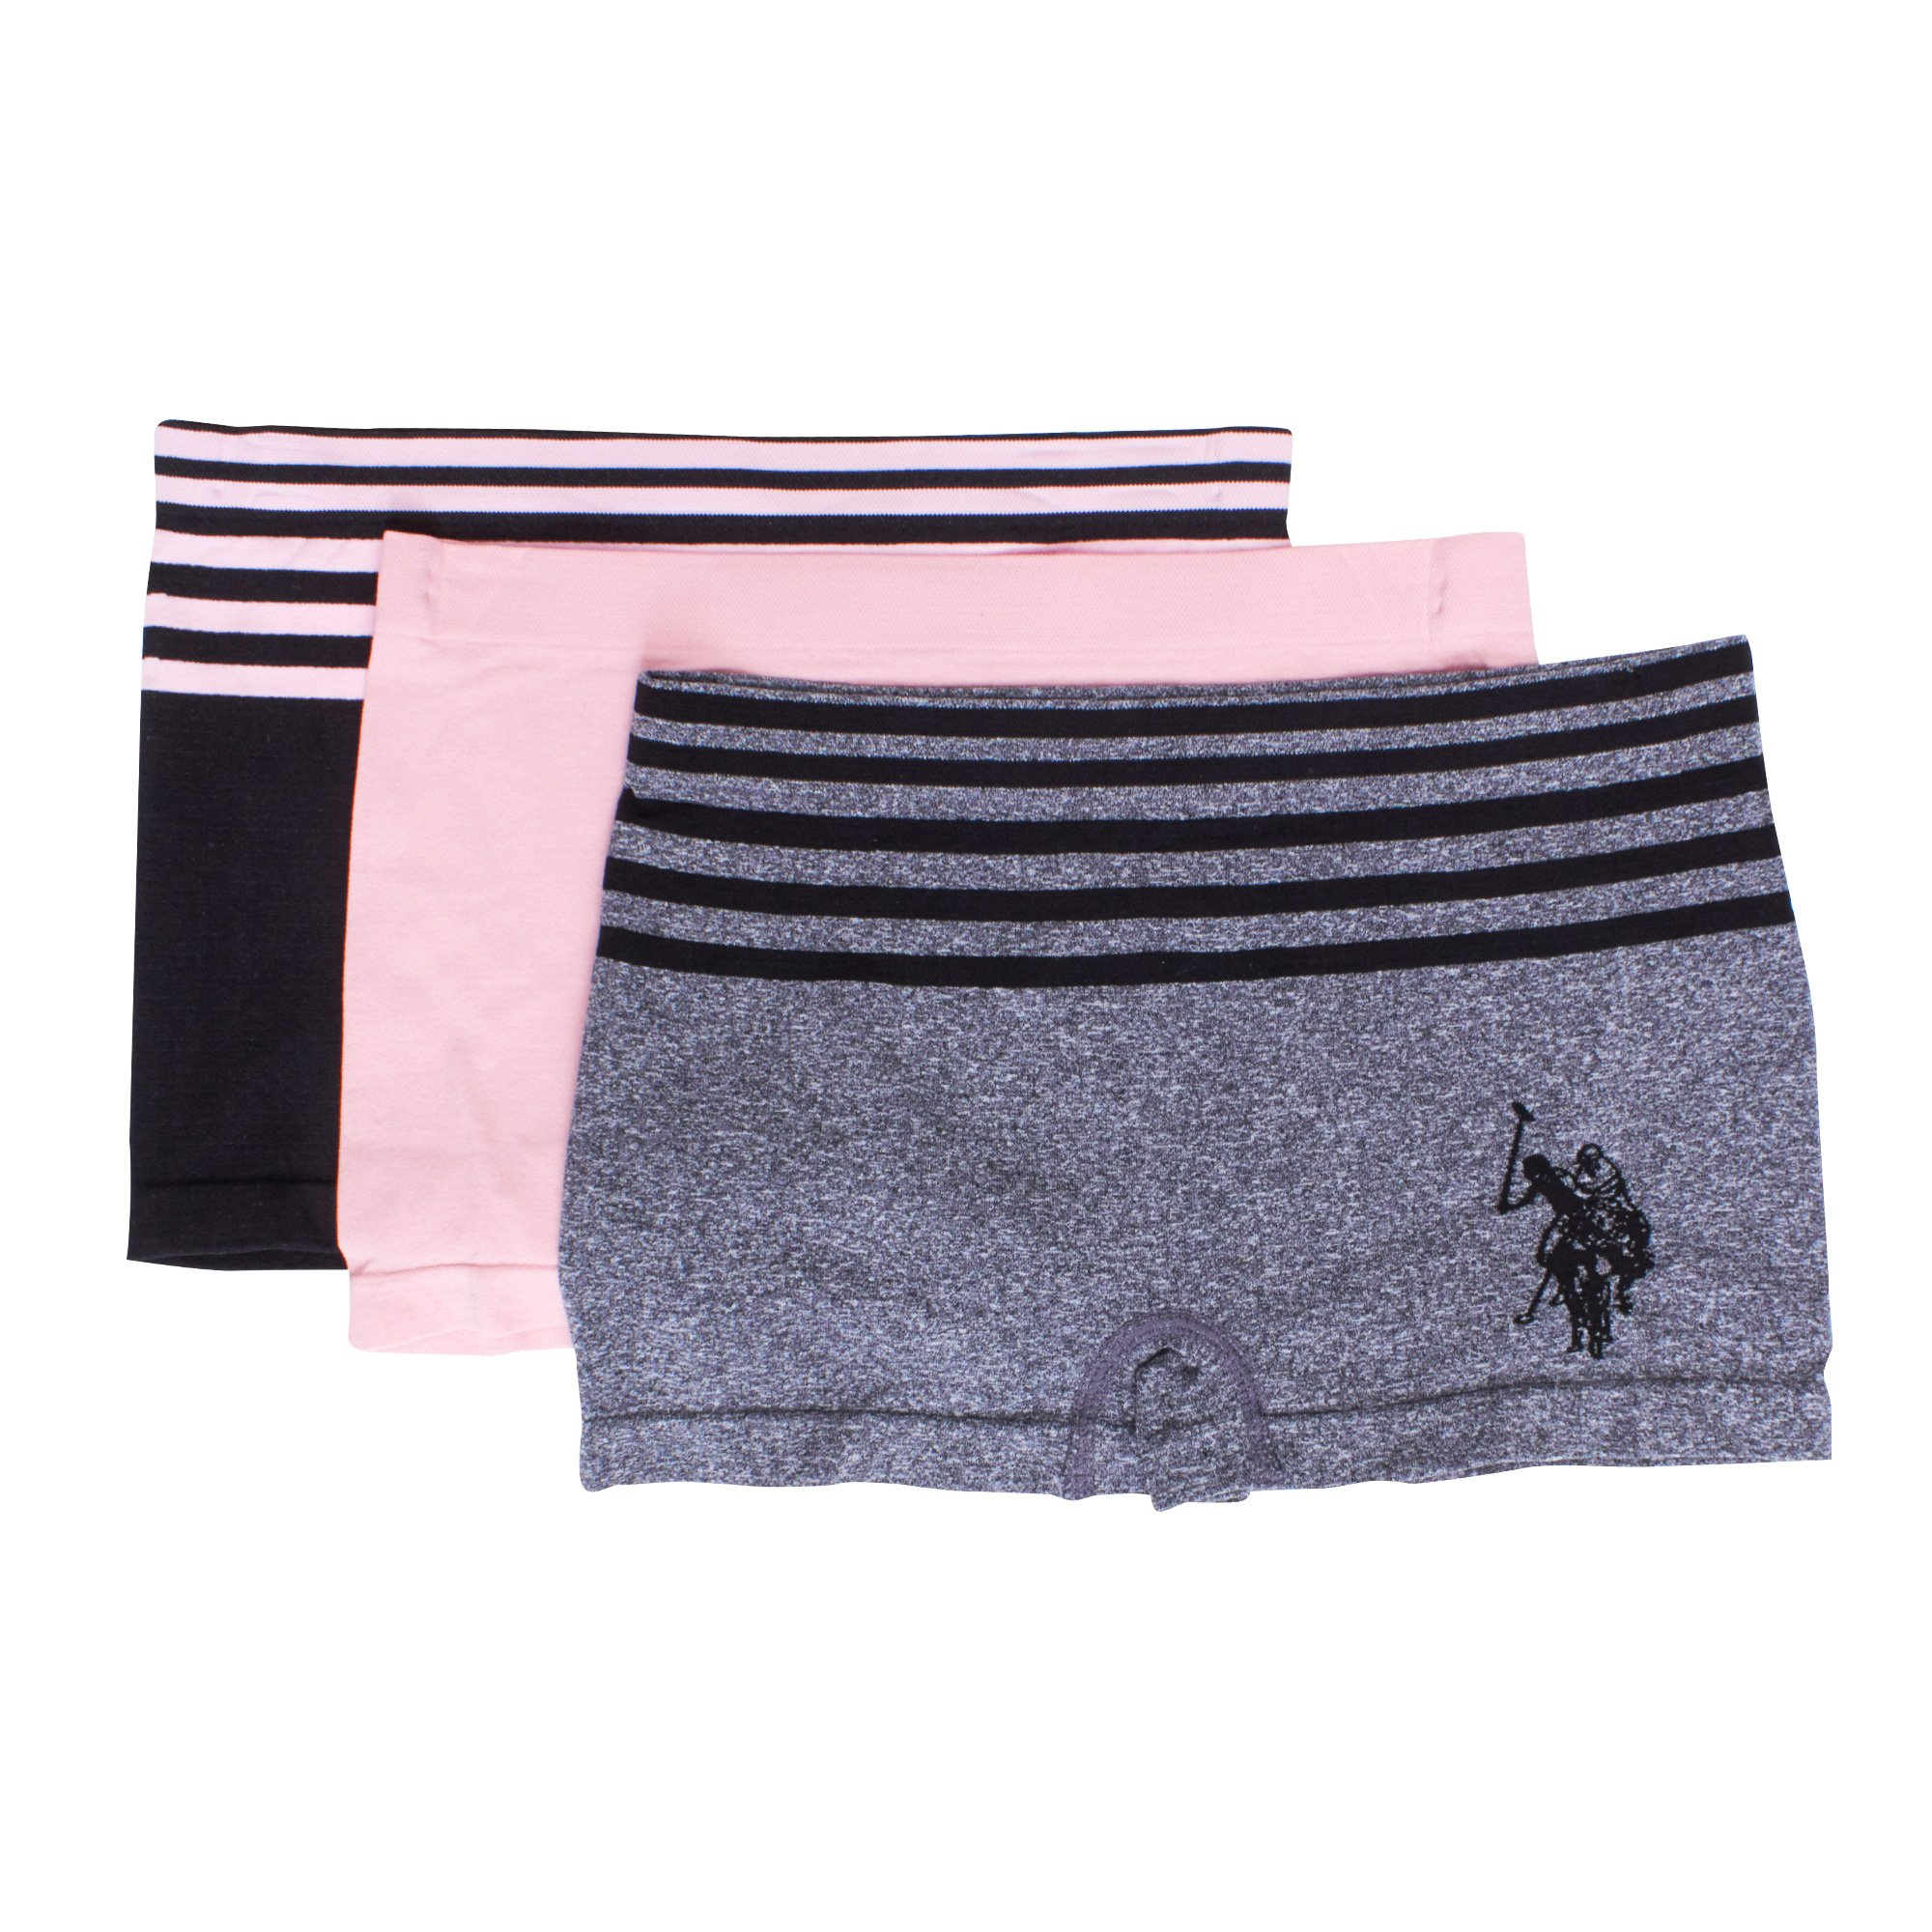 U.S. Polo Assn.. Womens 3 Pack Seamless Boyleg Hiphugger Elastic Waist Panties Set Heather Grey/Powder Pink/Black Large